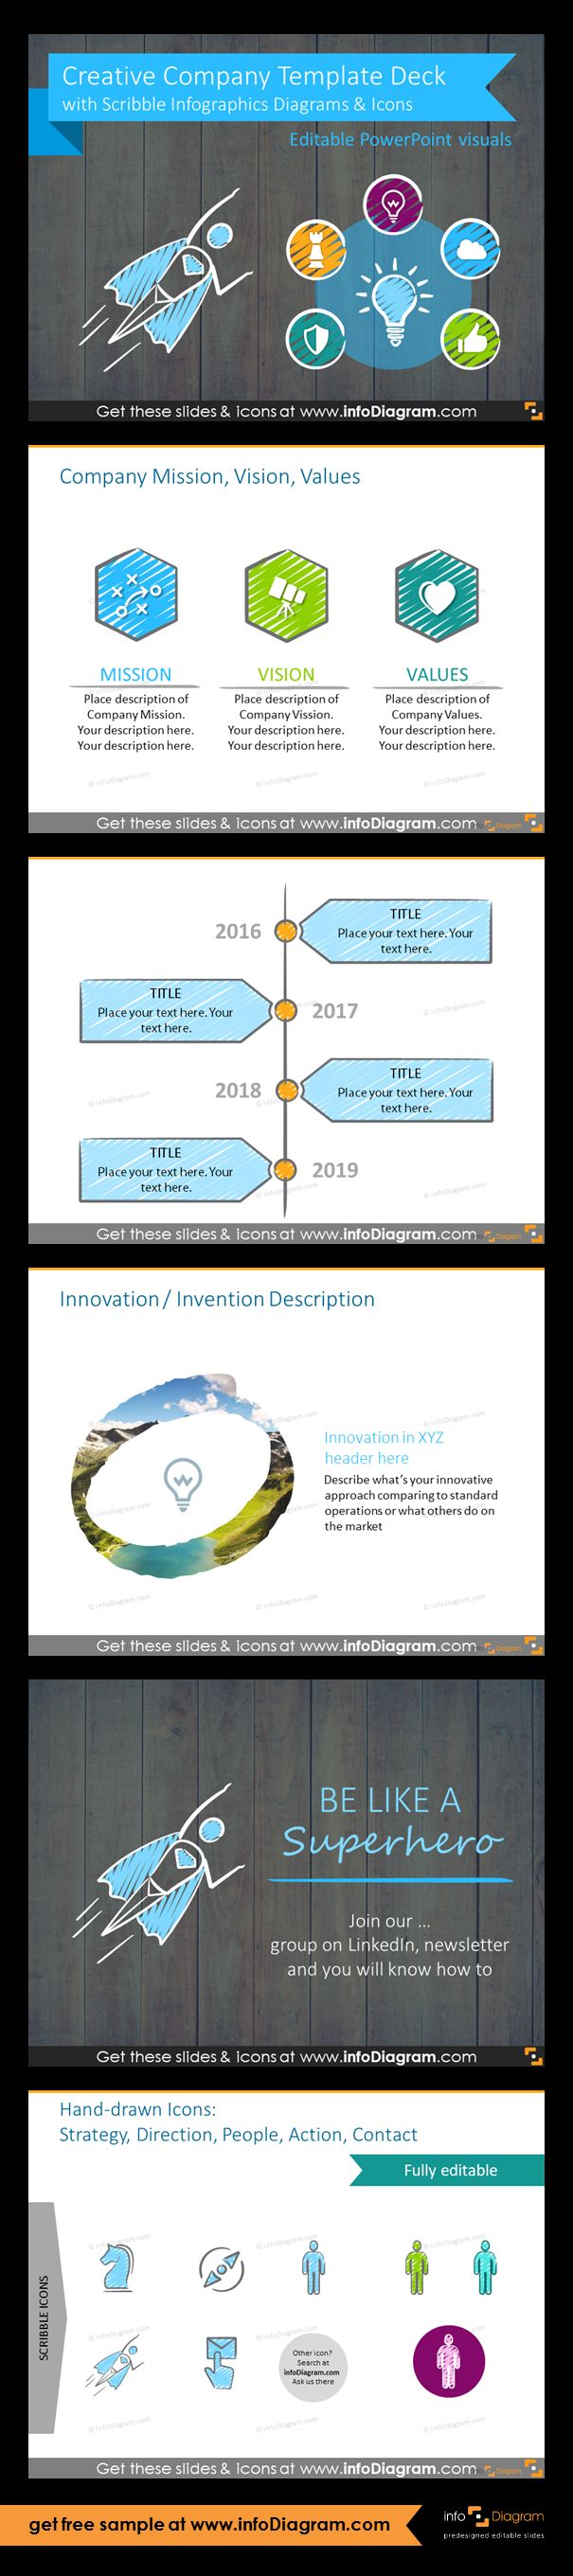 Best 25 powerpoint timeline slide ideas on pinterest this ppt deck includes the best presentation layout examples we also apply in our slide design projects vision mission and values template alramifo Image collections